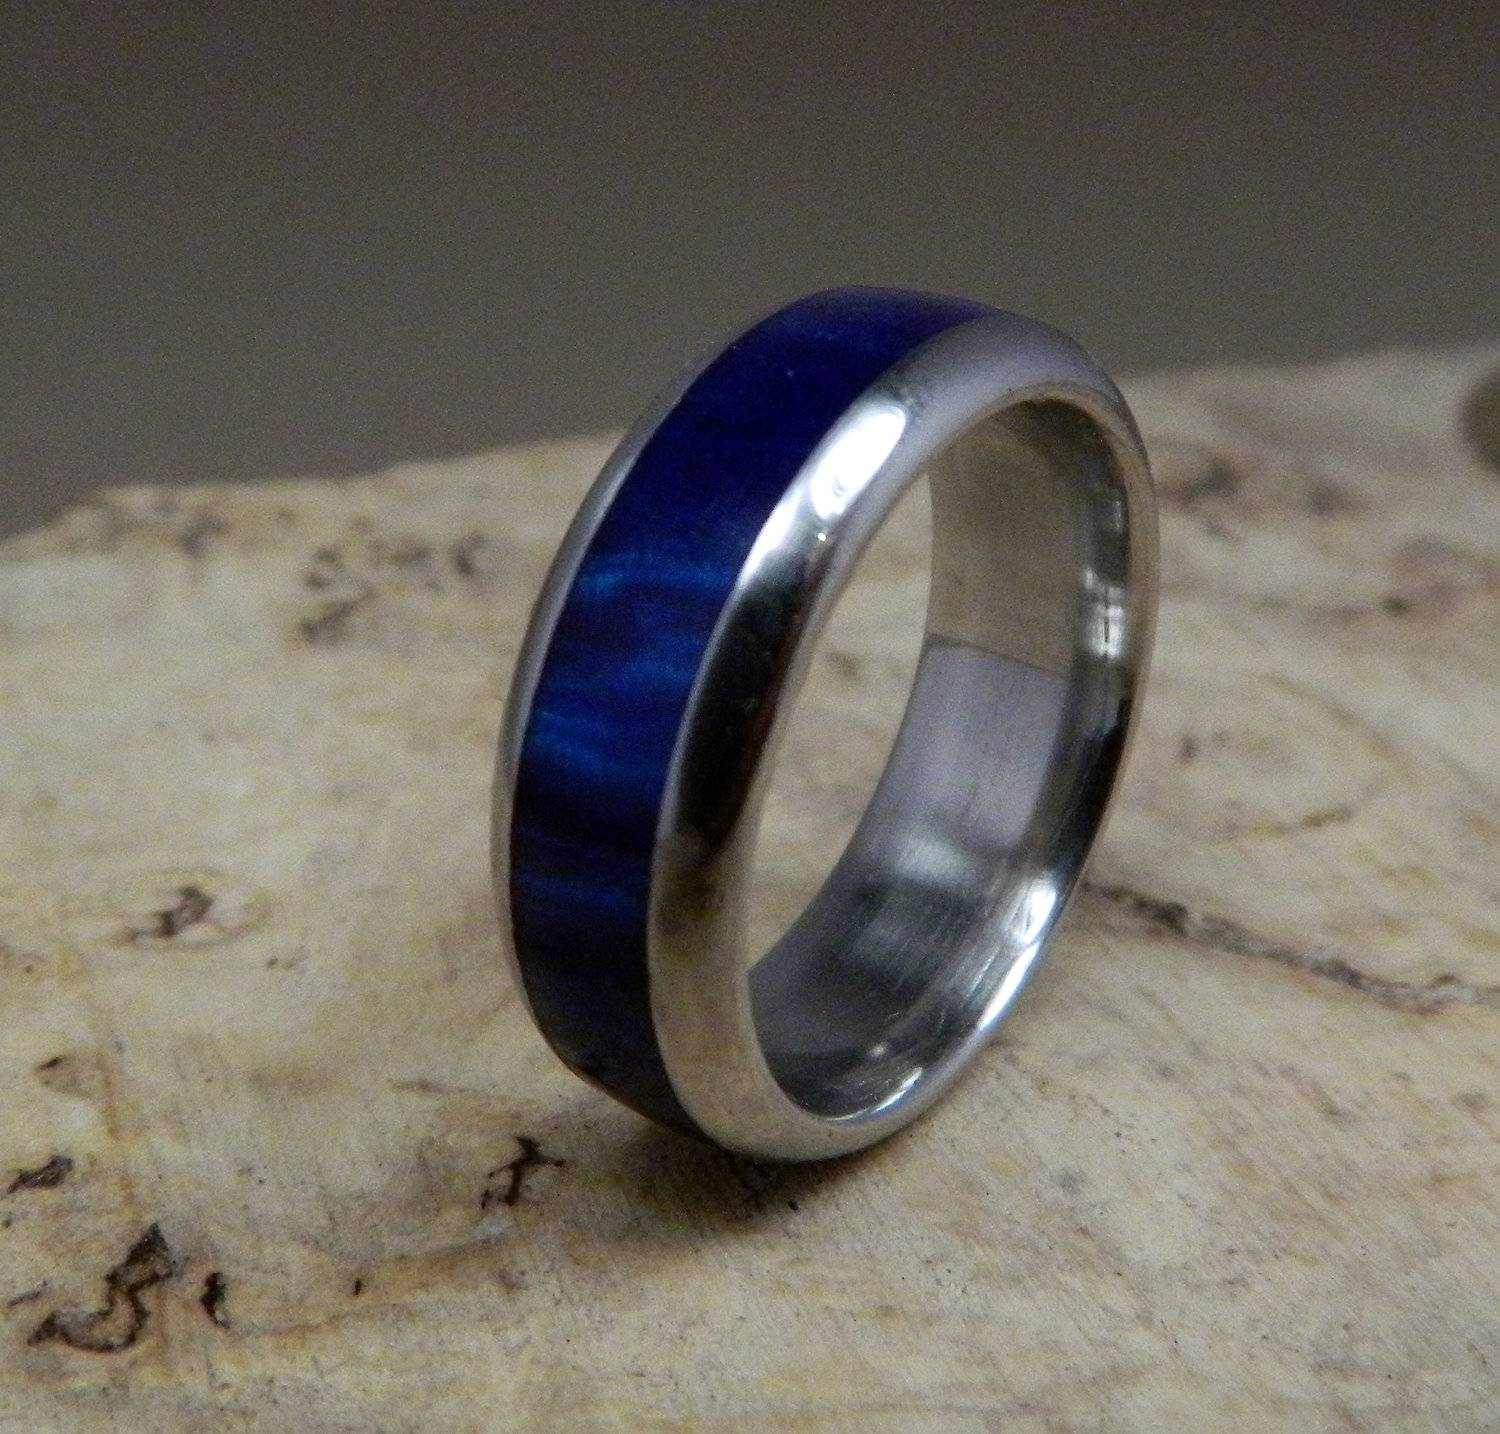 Stainless Steel Ring, Blue Ring, Acrylic Ring, Wedding Ring, Mens Pertaining To Mens Handmade Wedding Bands (View 7 of 15)